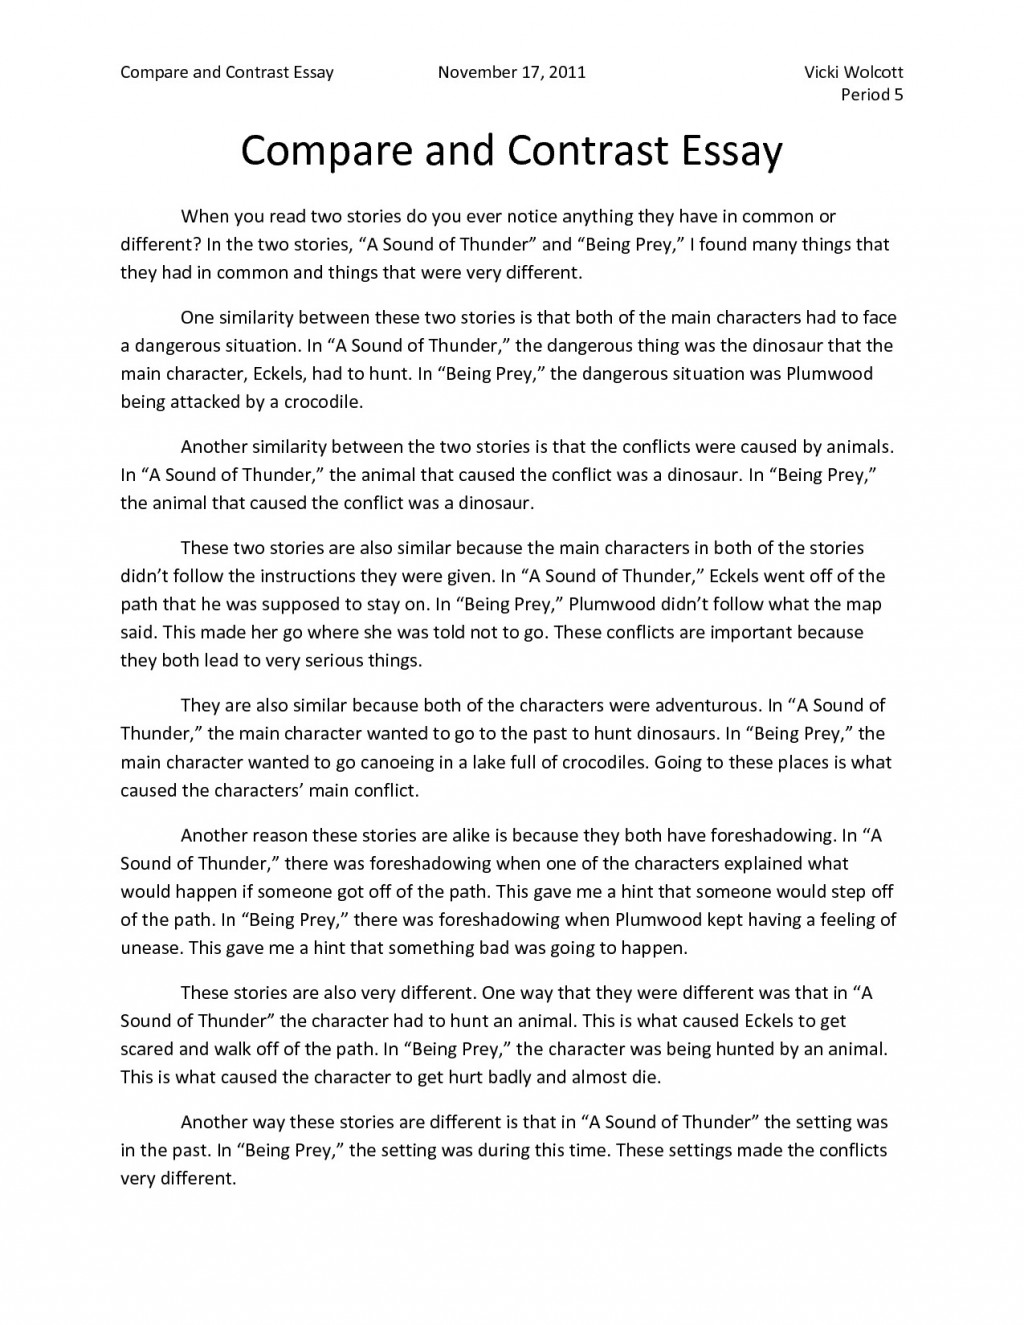 005 Essay Example An Of Compare And Contrast Comparison Ideas Awful Rubric Template Word Large